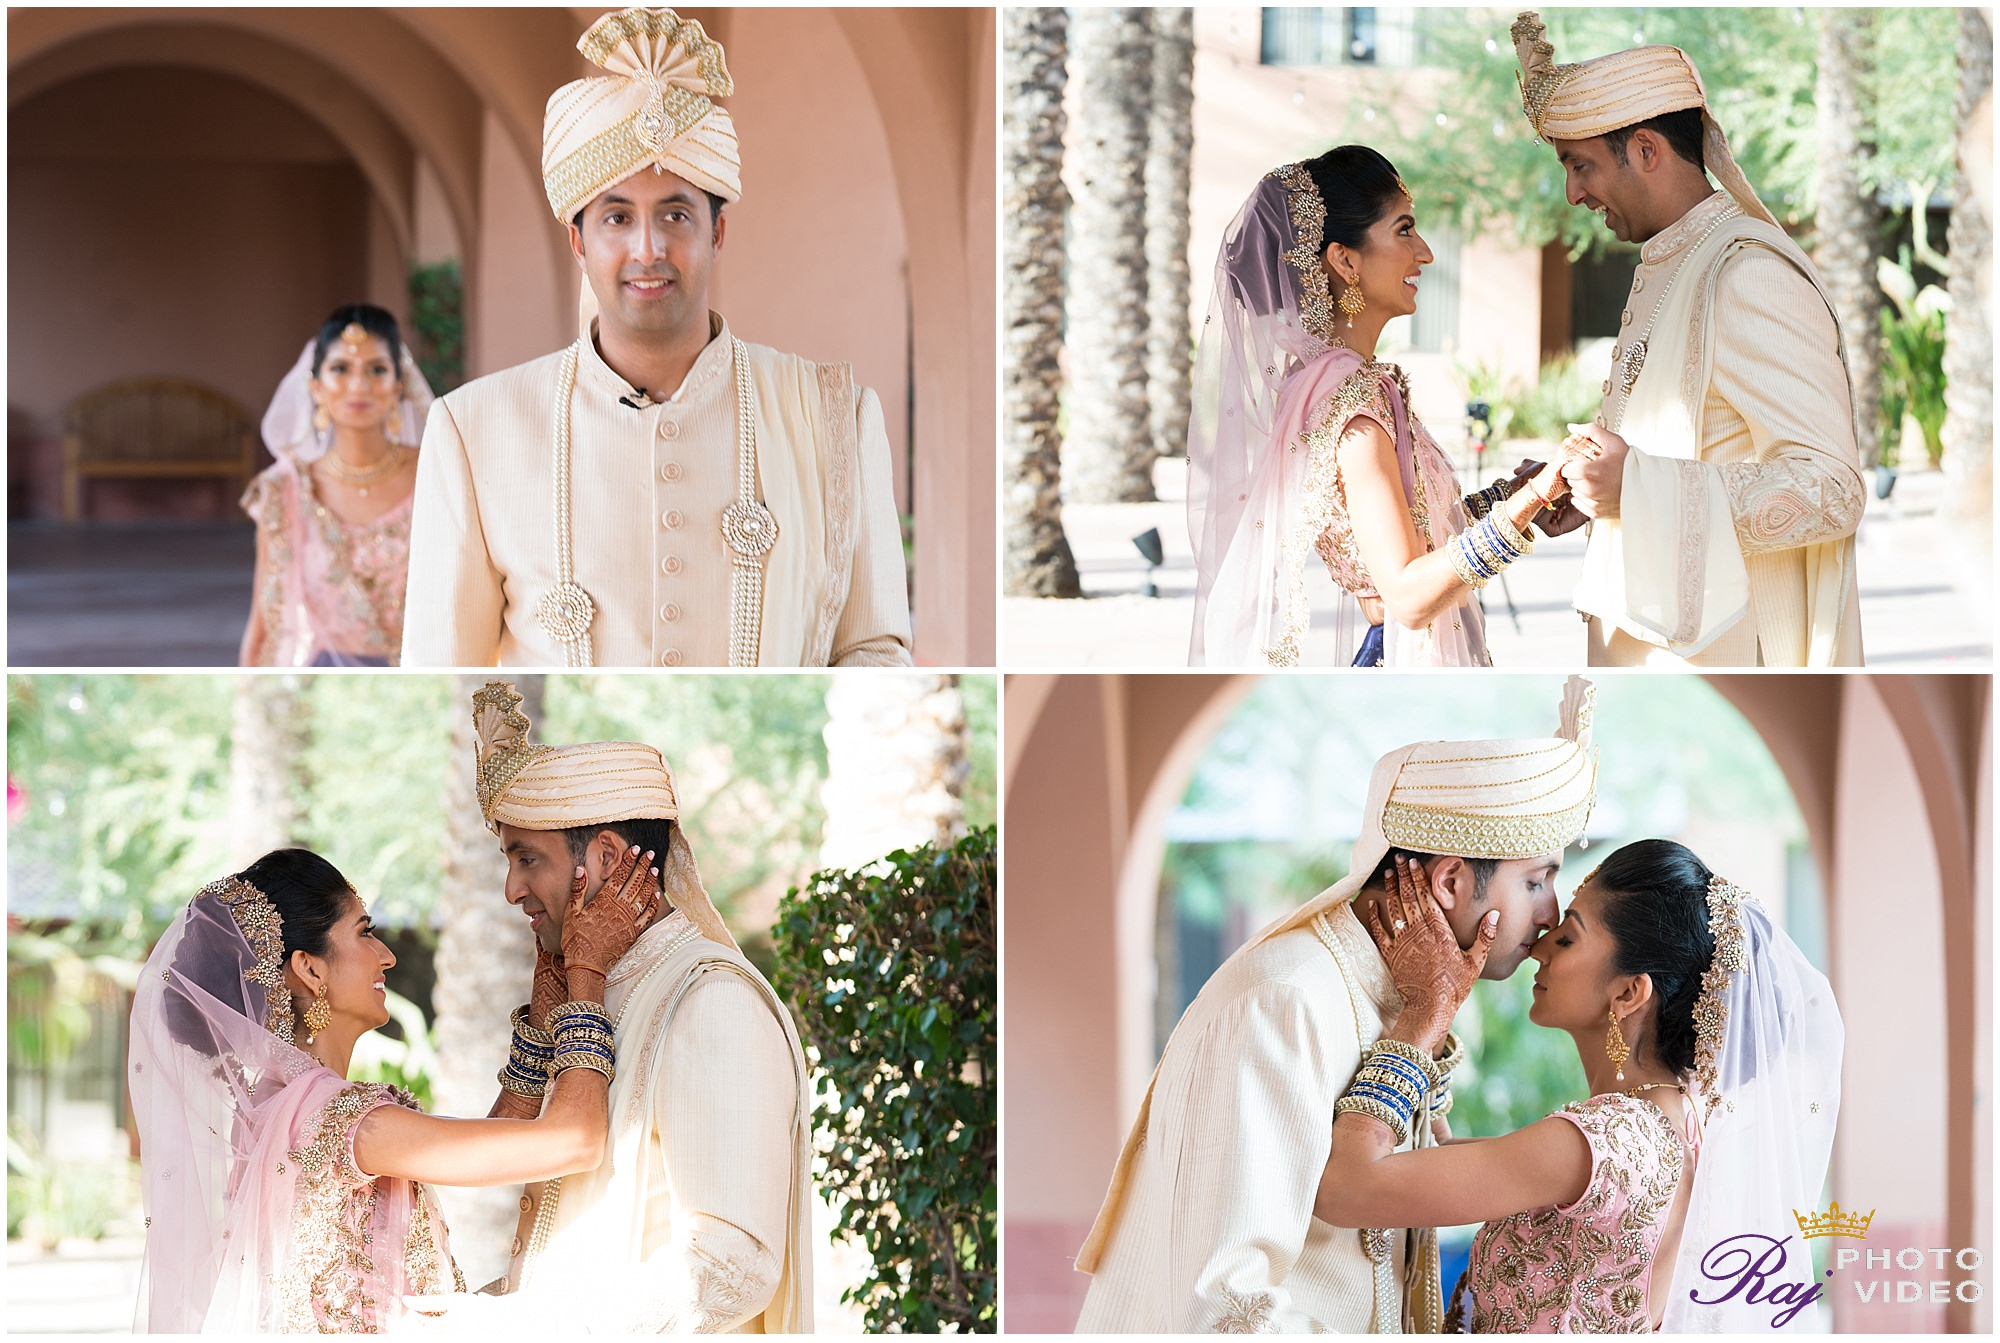 Scottsdale_Marriott_at_McDowell_Mountains_Arizona_Indian_Wedding_Sapna_Shyam-35.jpg